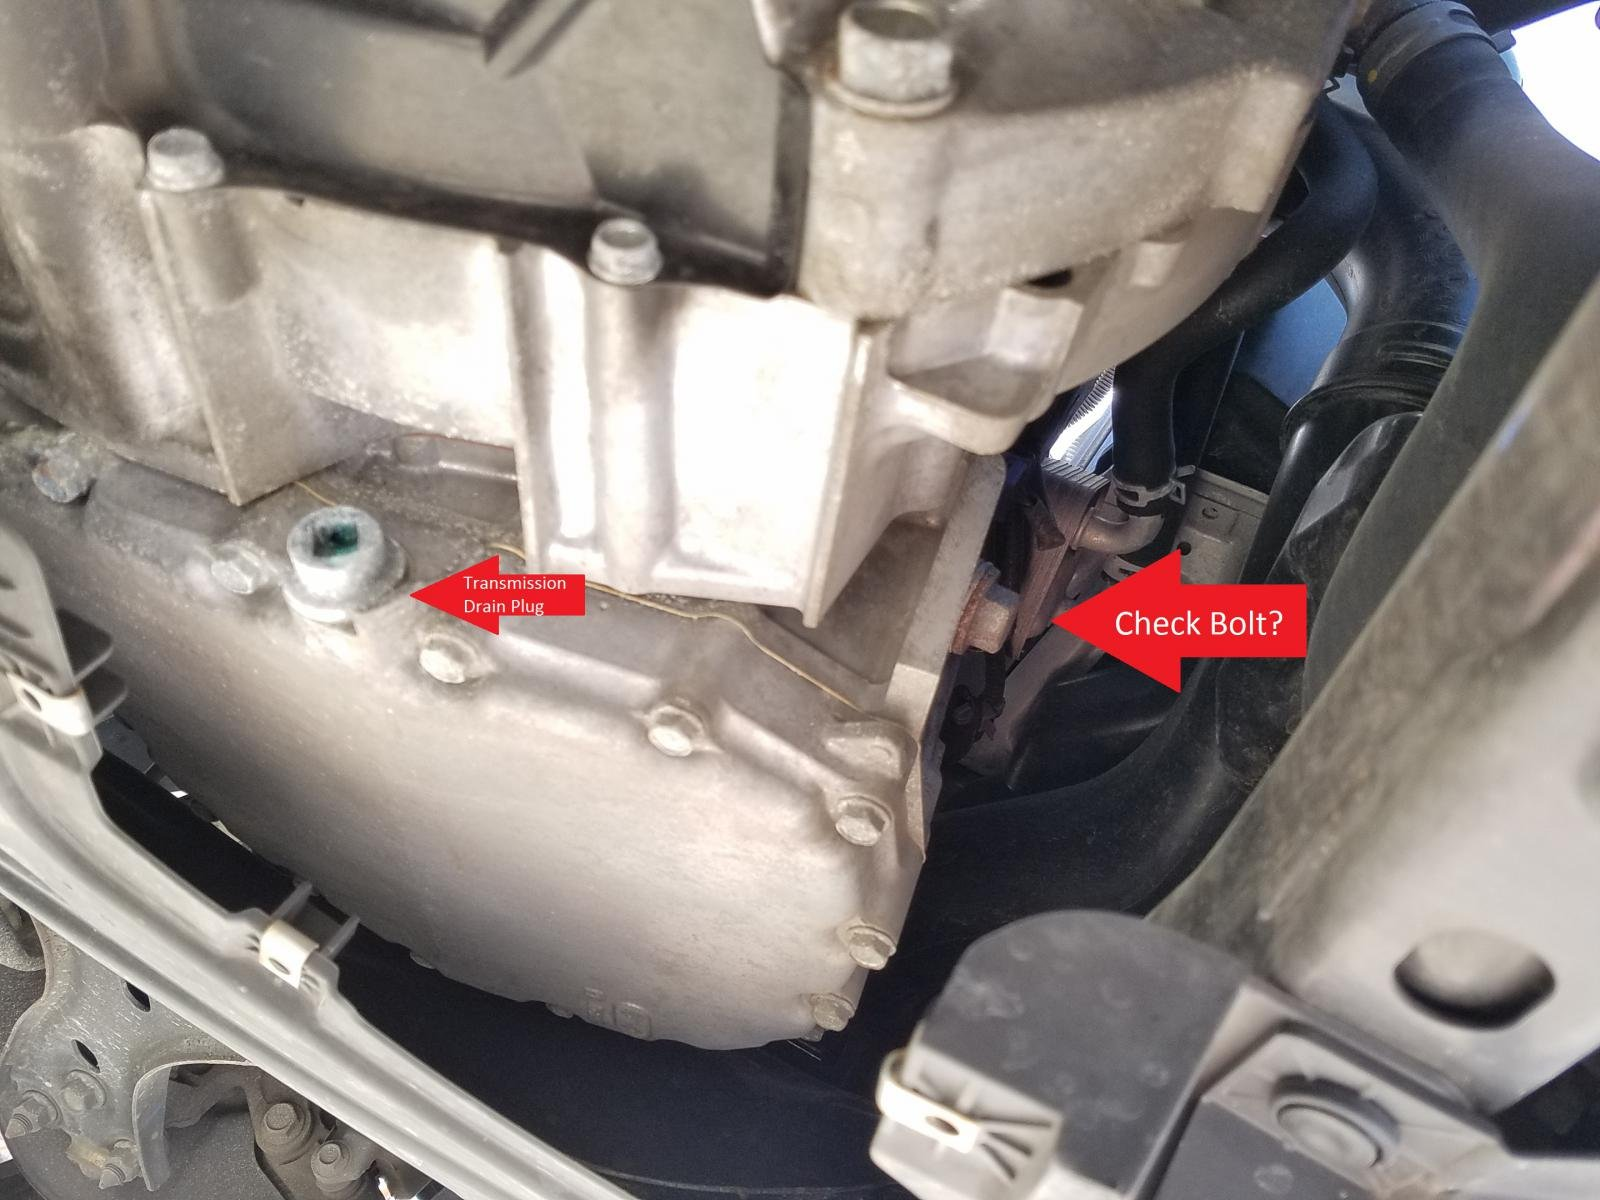 2009 honda civic si manual transmission fluid change